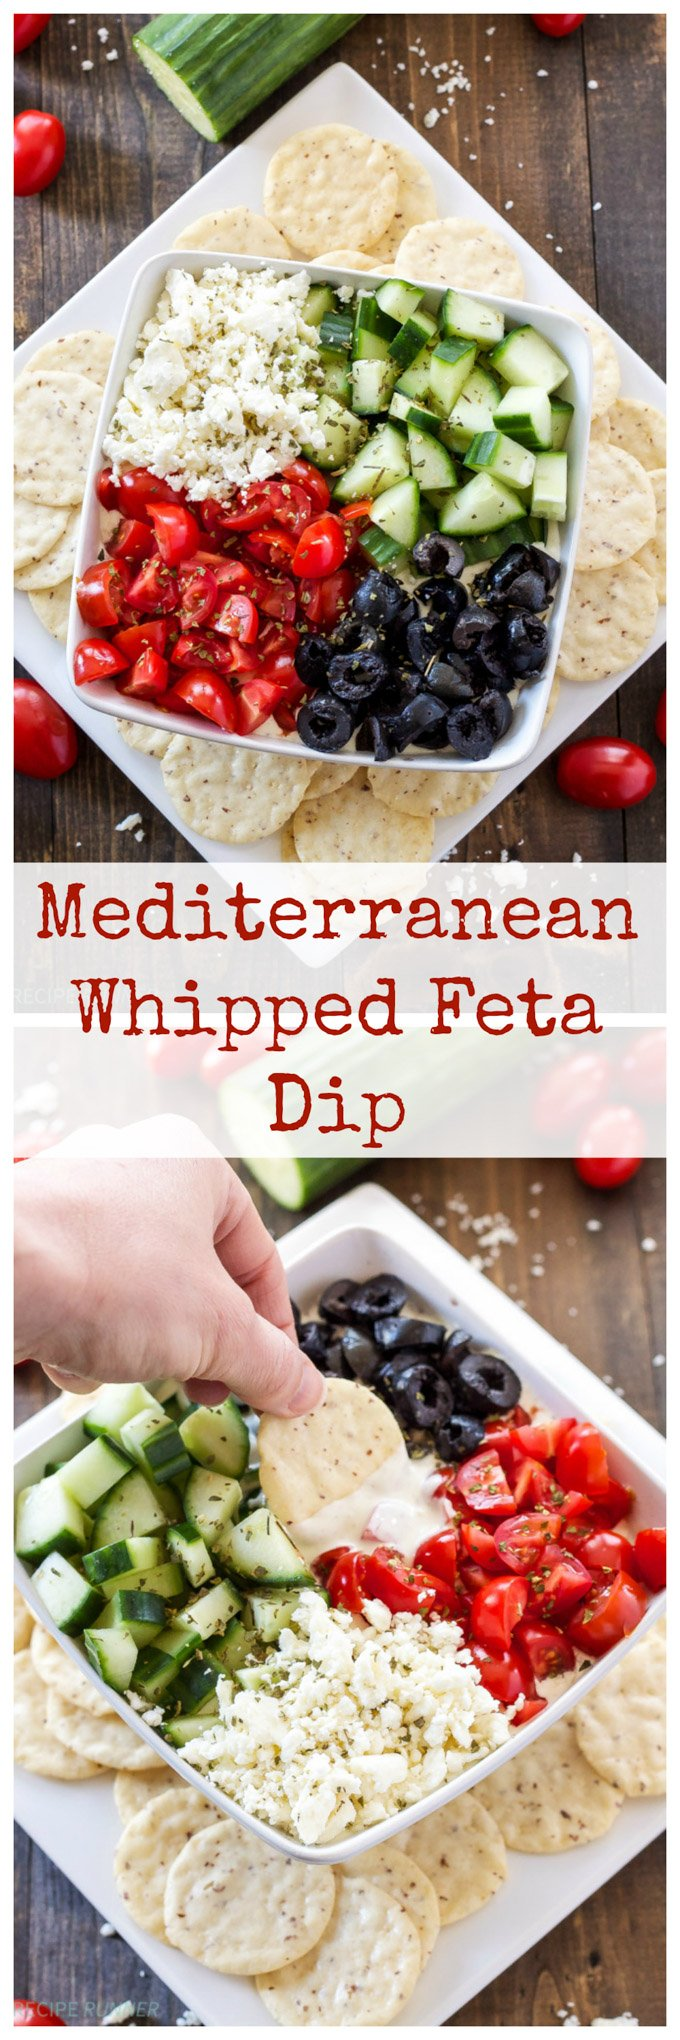 Mediterranean Whipped Feta Dip | This gluten free delicious dip is full of Mediterranean flavors and perfect for summer! #ad